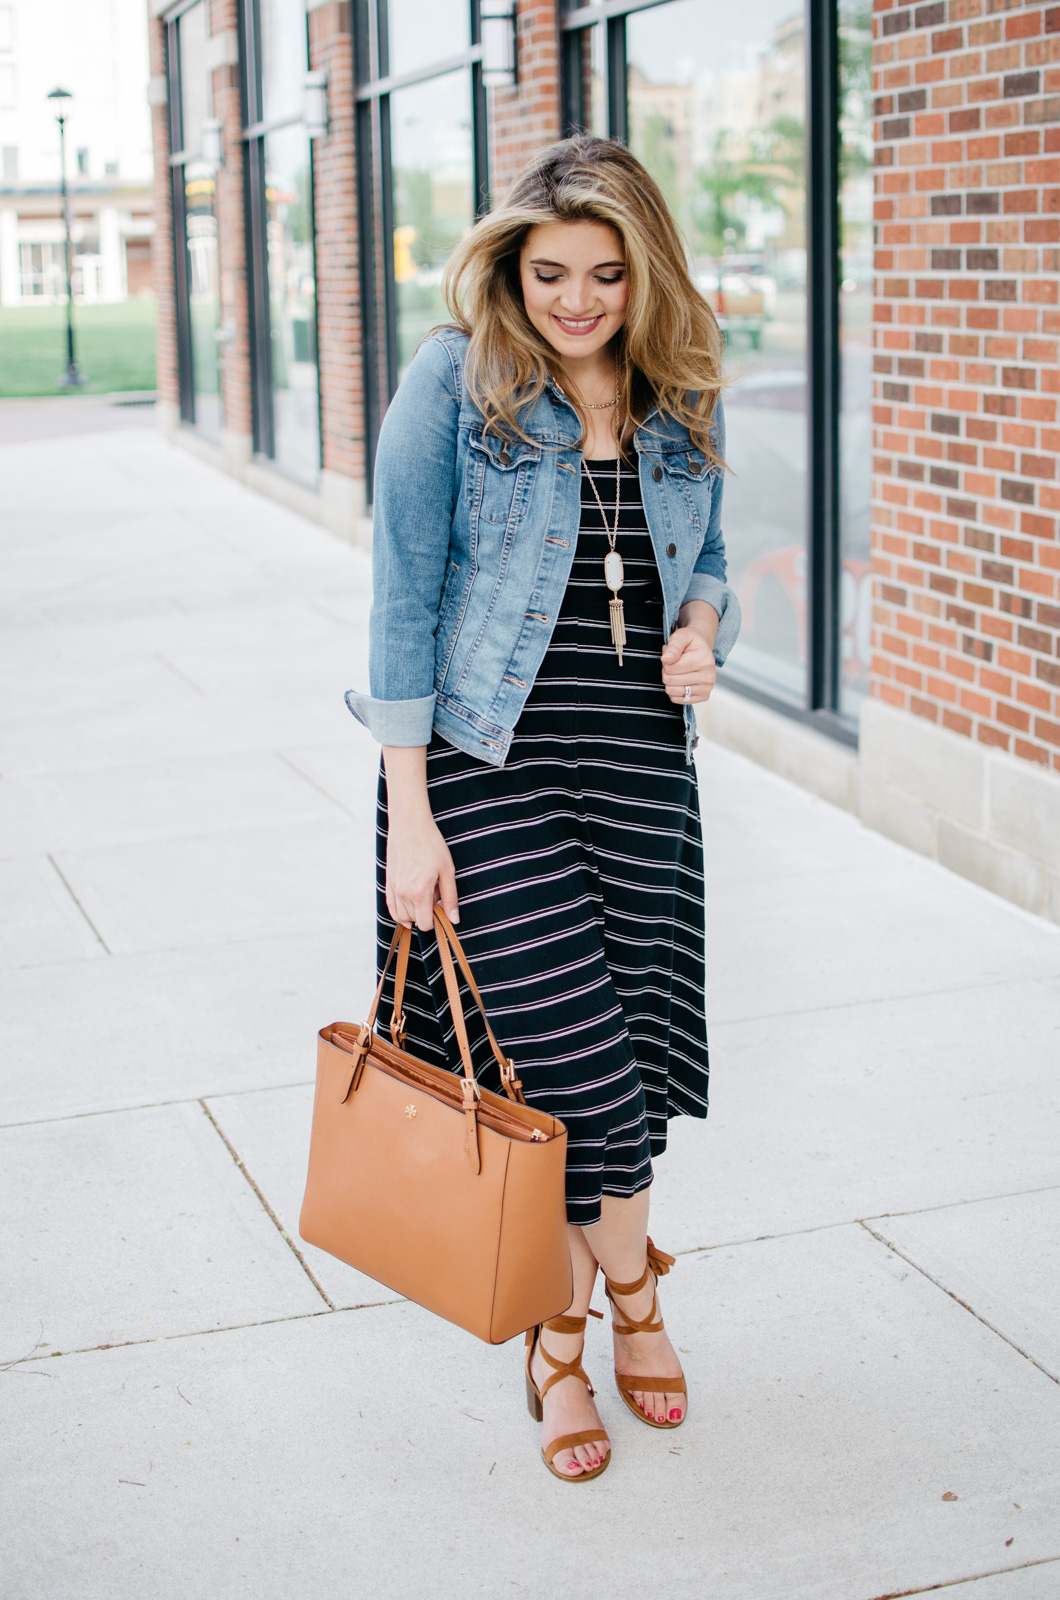 spring casual outfit - tshirt dress outfit - striped midi dress | For more Spring outfit ideas, head to bylaurenm.com!